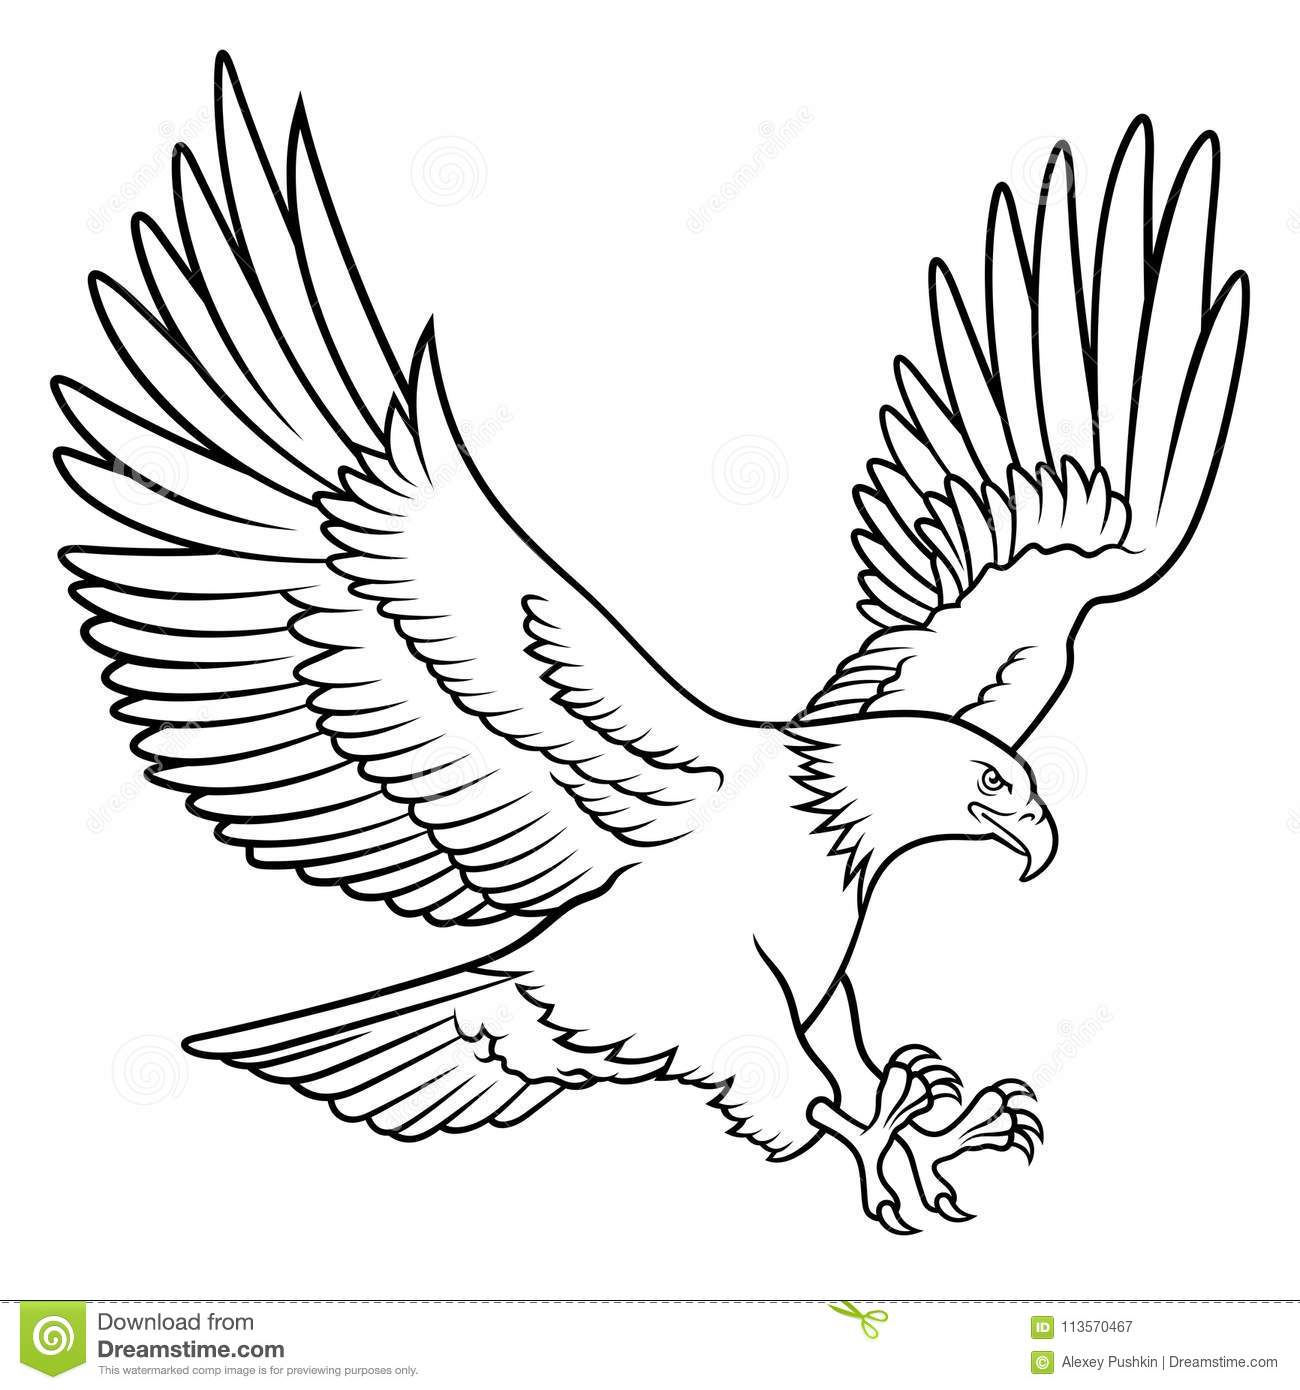 Bald eagle silhouette isolated on white hand drawn sketch of an american eagle this vector illustration can be used as a print on t shirts tattoo element